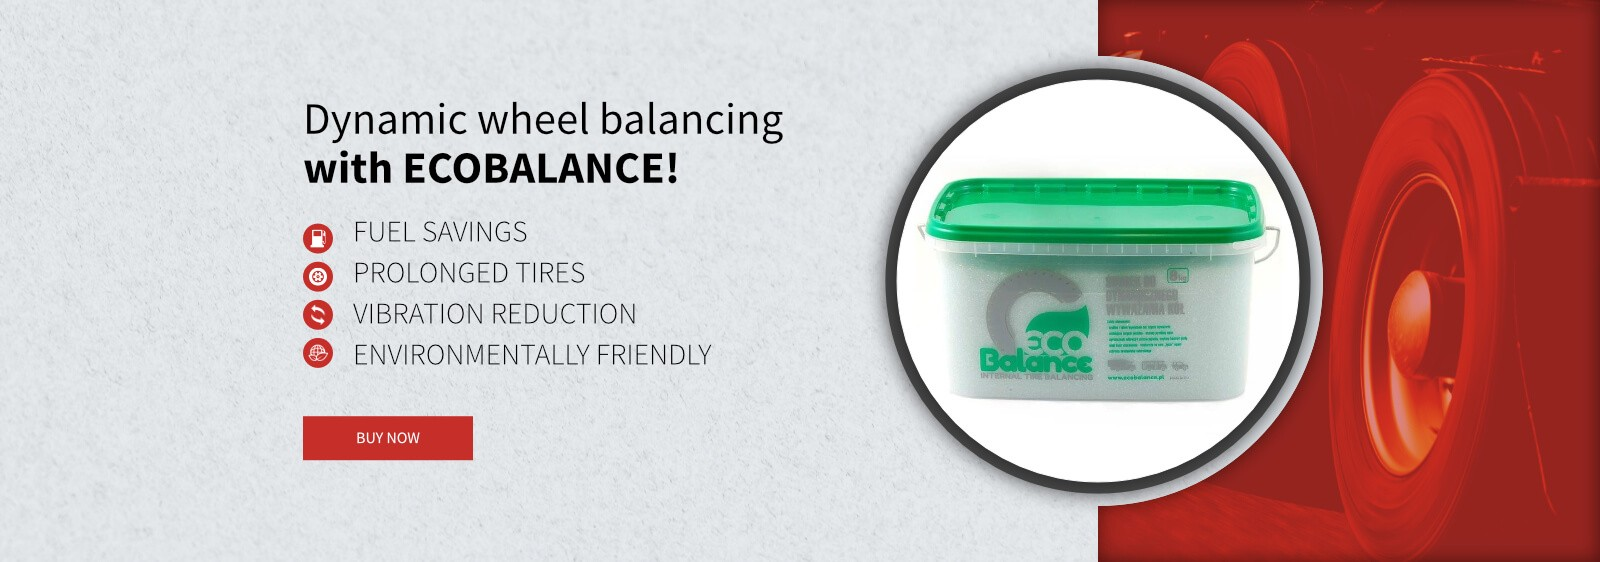 Dynamic wheel balancing with ECOBALANCE